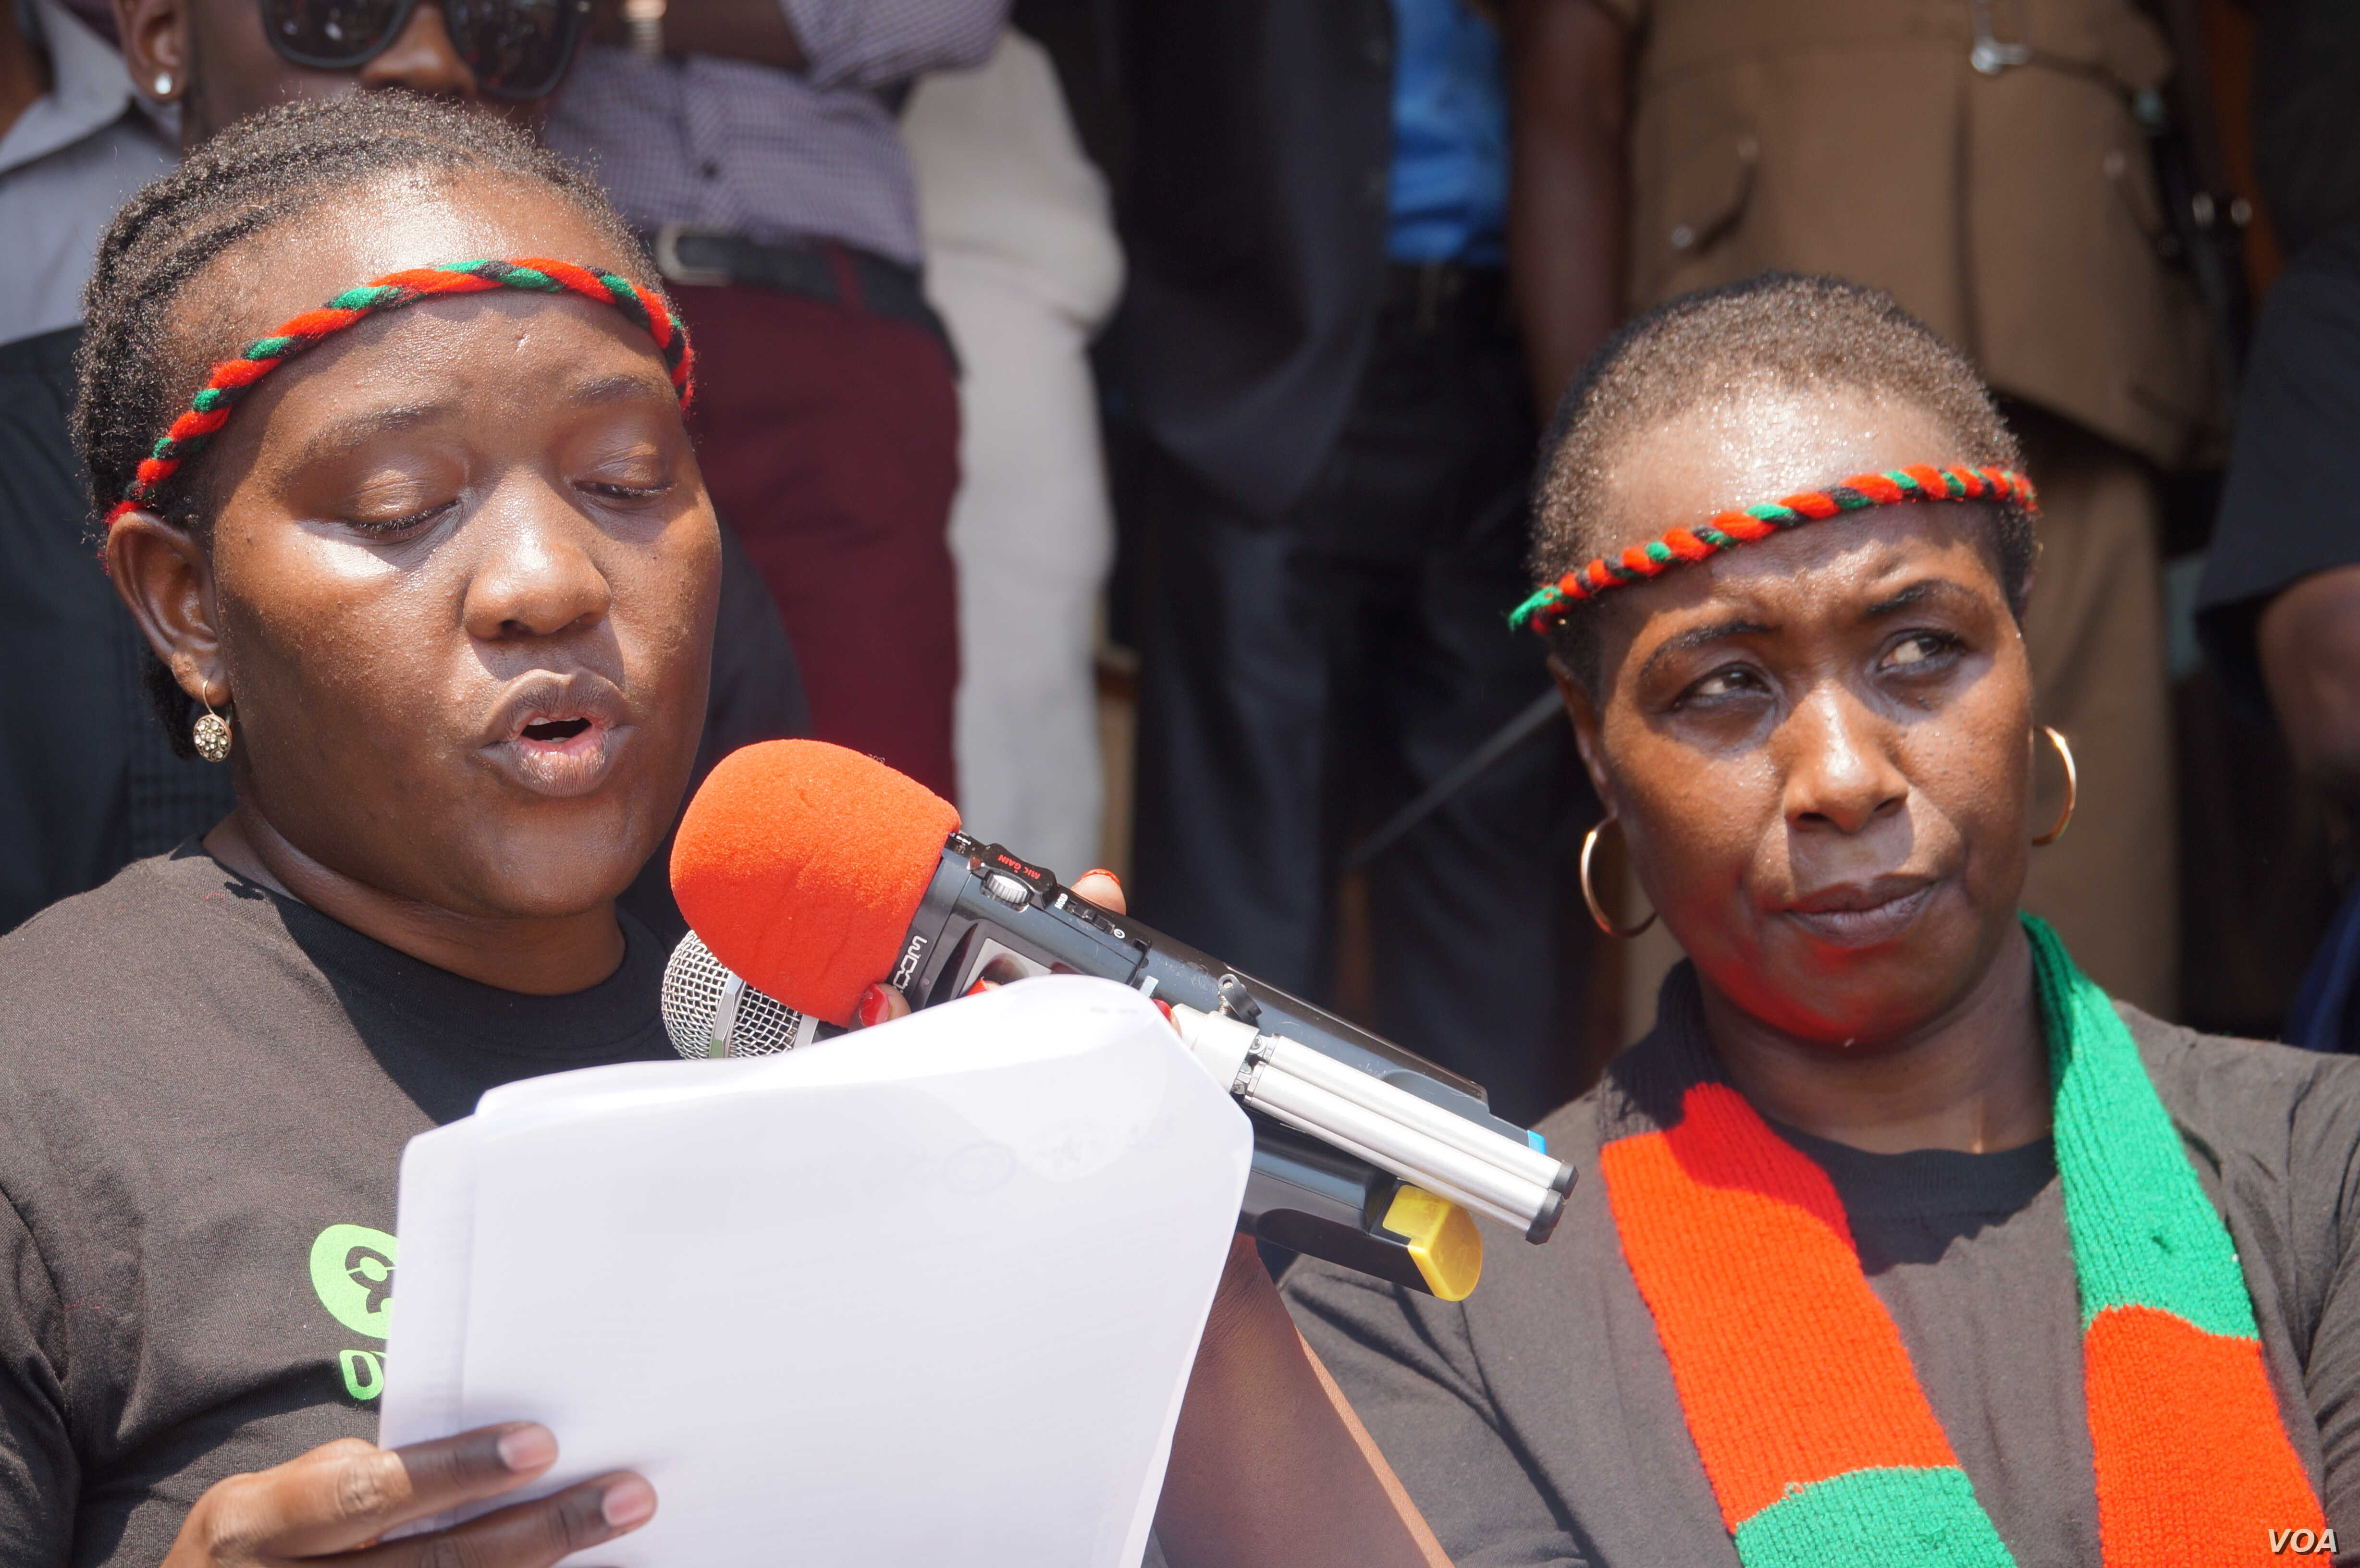 Sarai Chisala-Templehoff of the Women Lawyers Association reads a petition in Lilongwe while Jessie Kabwila, chair of Women's Parlaimentary Caucus, right, looks on, Sept. 14, 2017. (L. Masina/VOA)